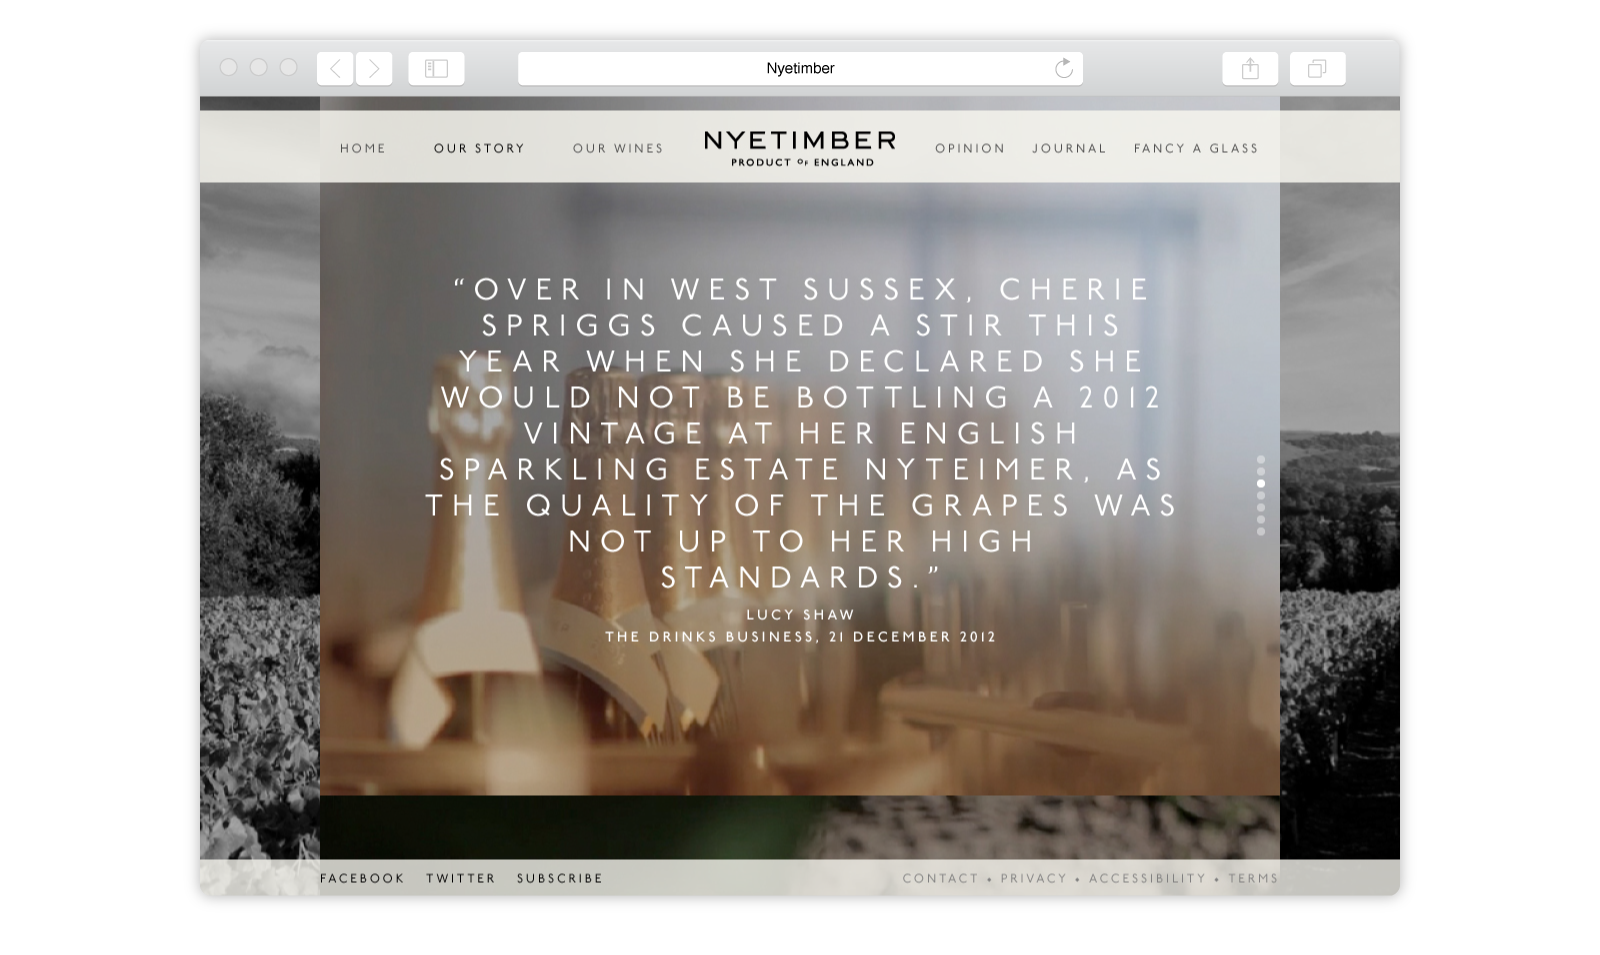 nyetimber_6.png